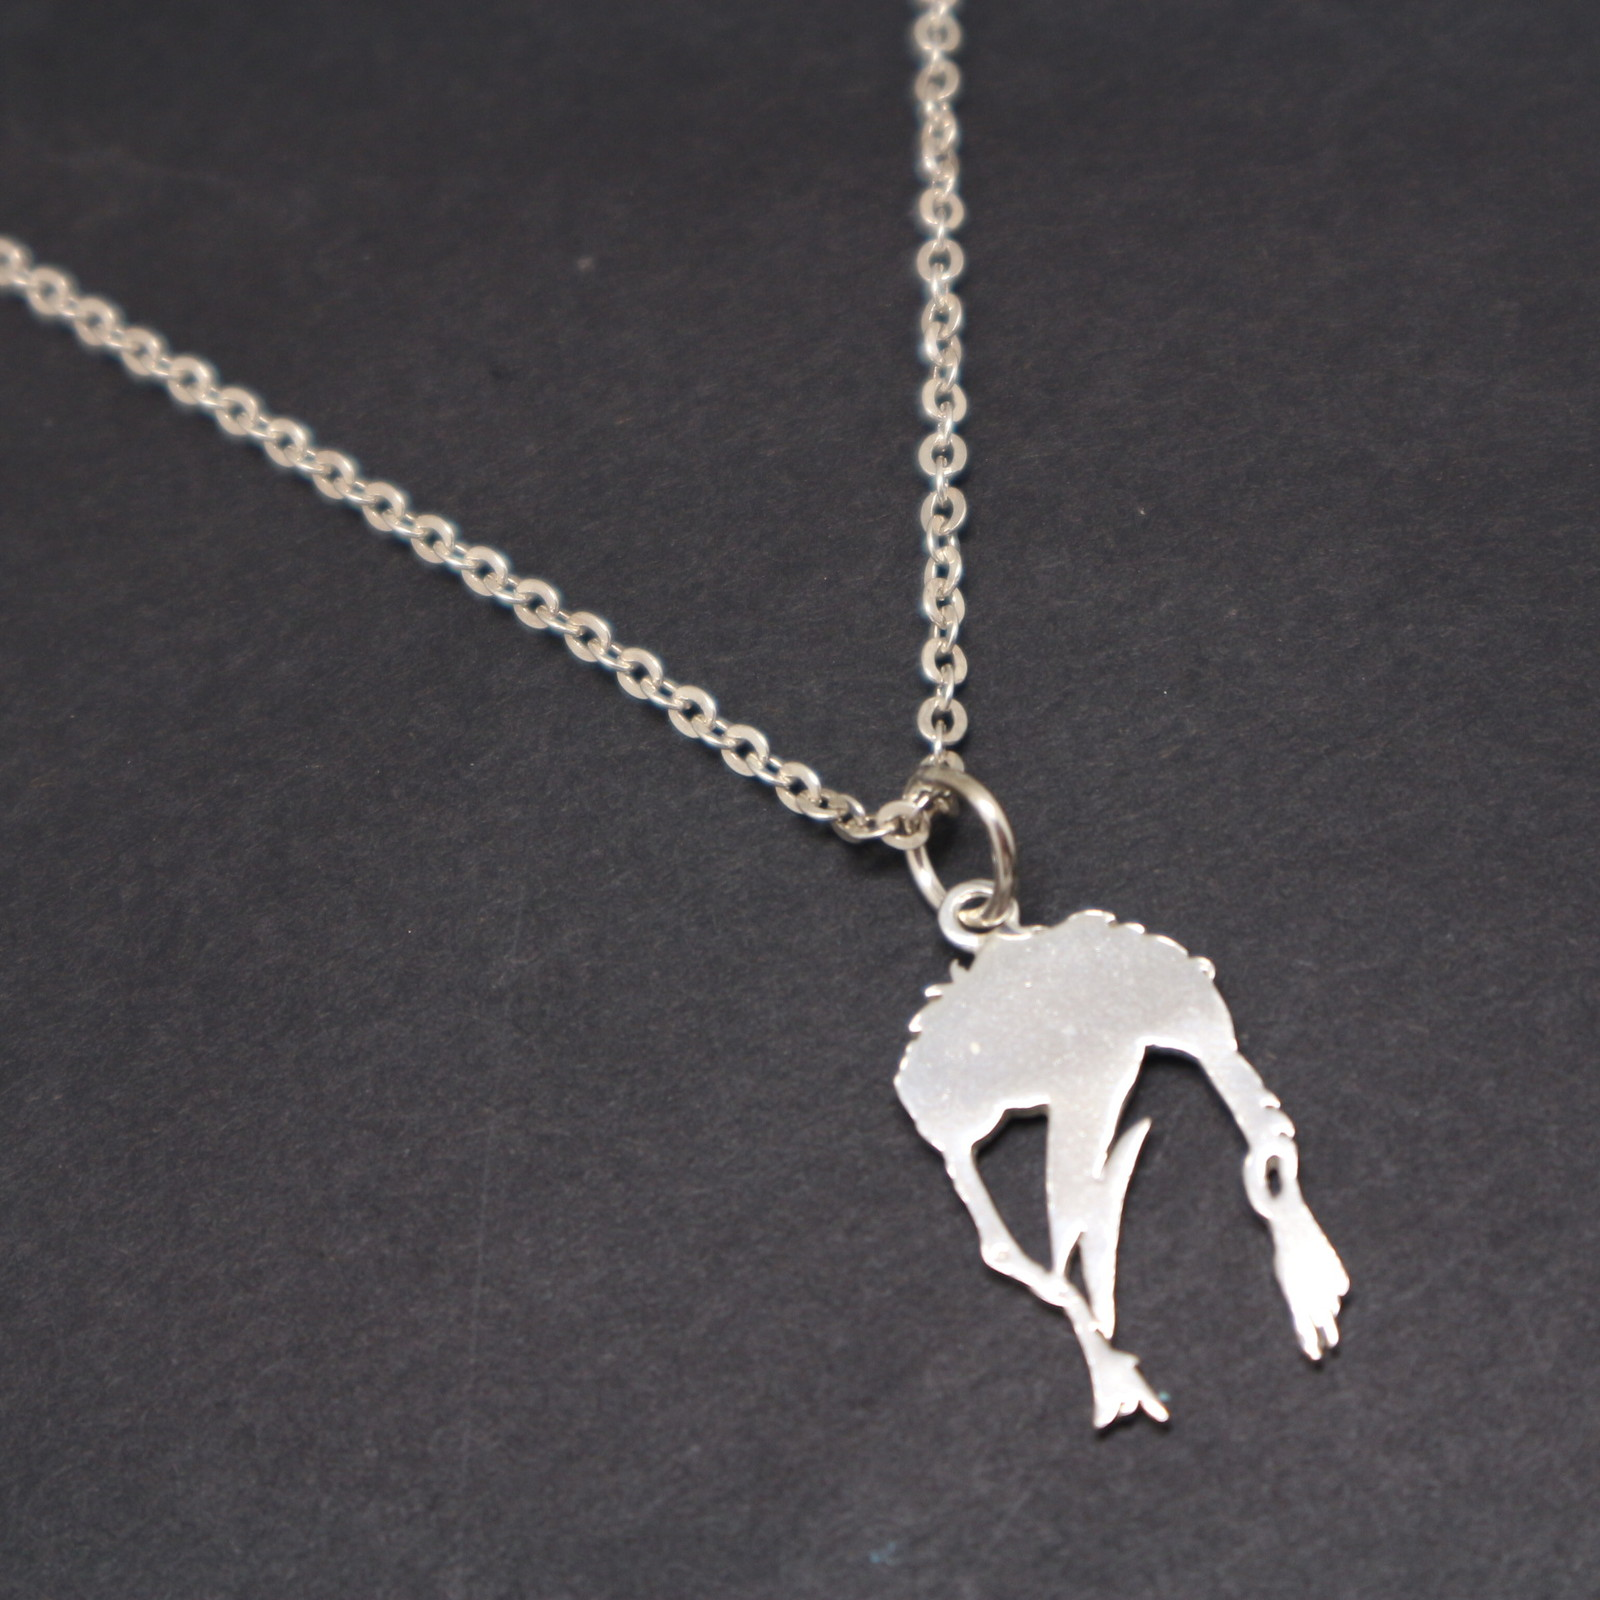 Sterling Silver David Bowie Necklace Pendant - 16,18, 20,22,24 Inch Chain Length